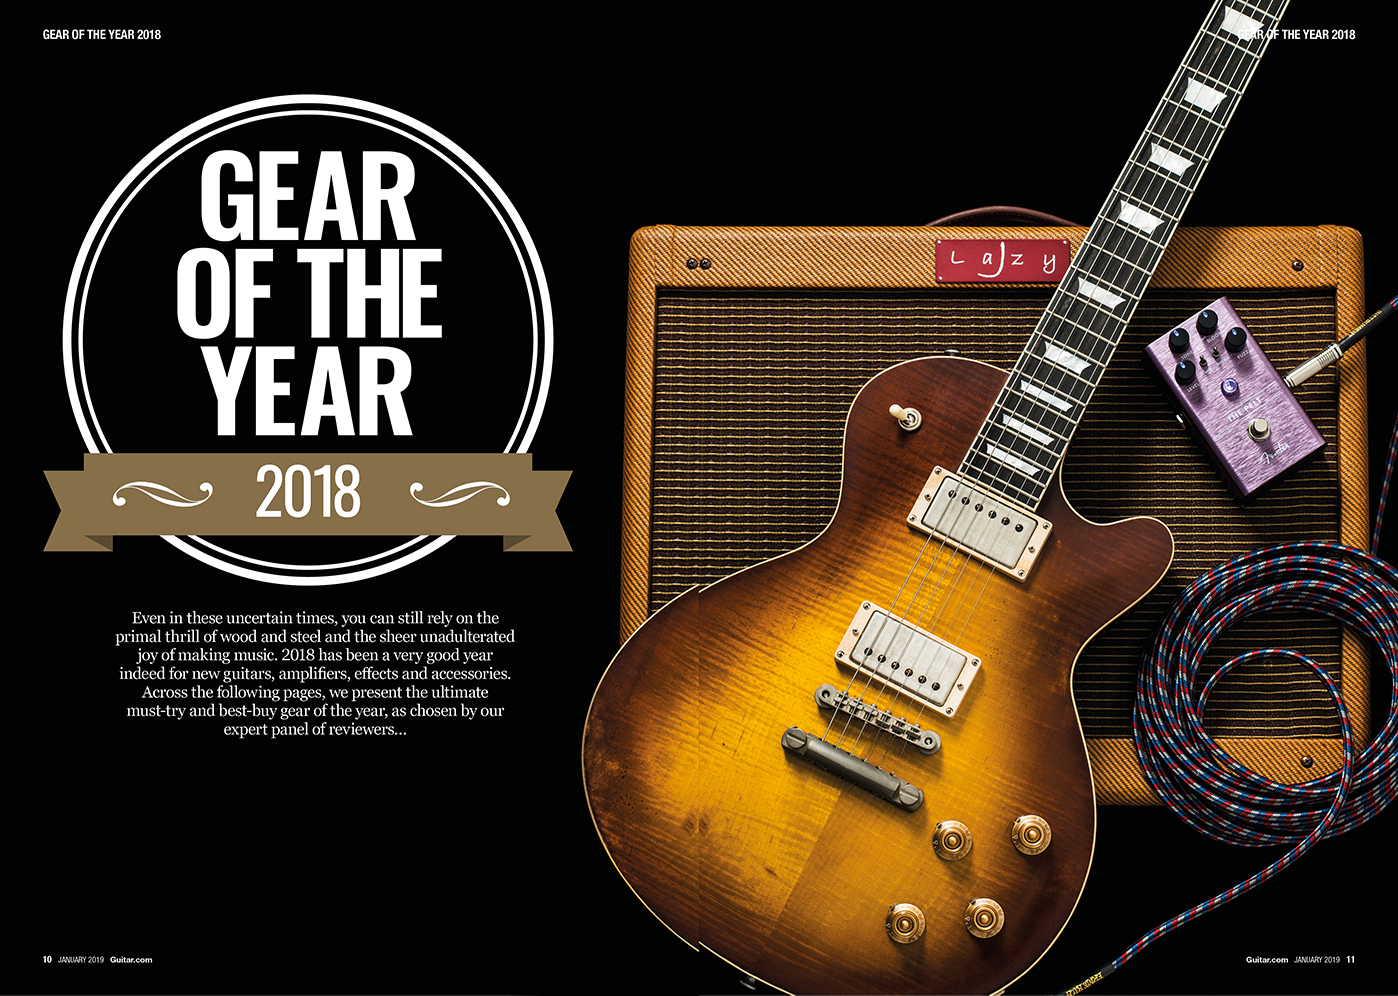 Gear of the year 2018